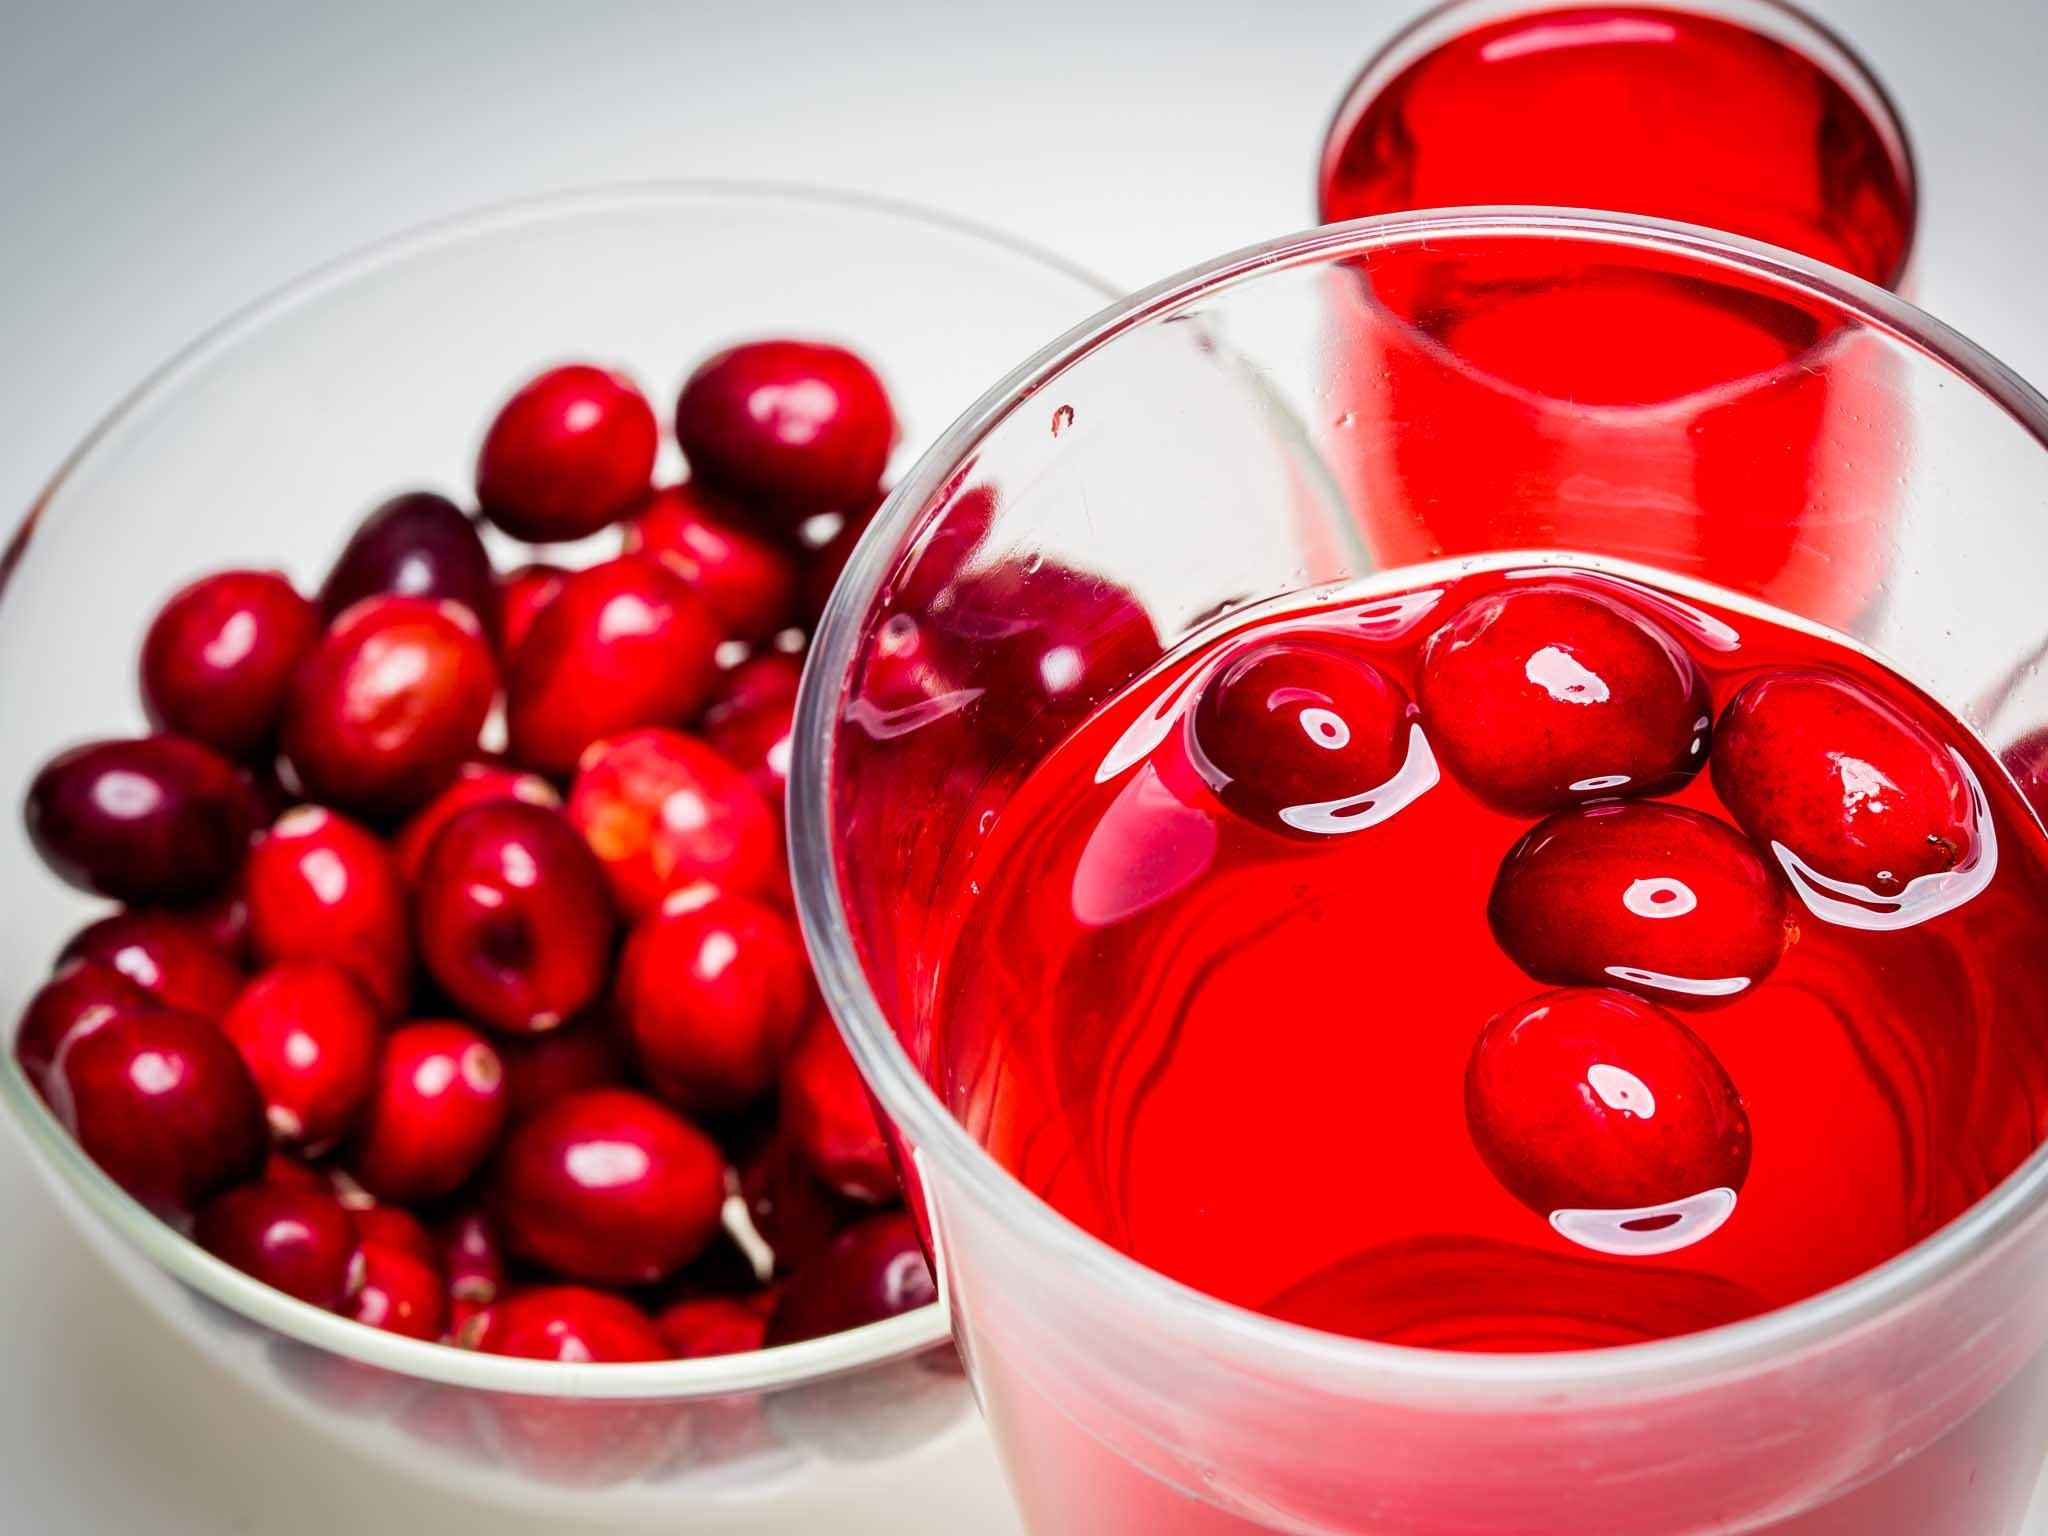 cranberry juice and uti Traditionally, cranberry has been used for the treatment and prophylaxis of urinary tract infections research suggests that its mechanism of action is preventing bacterial adherence to host cell .